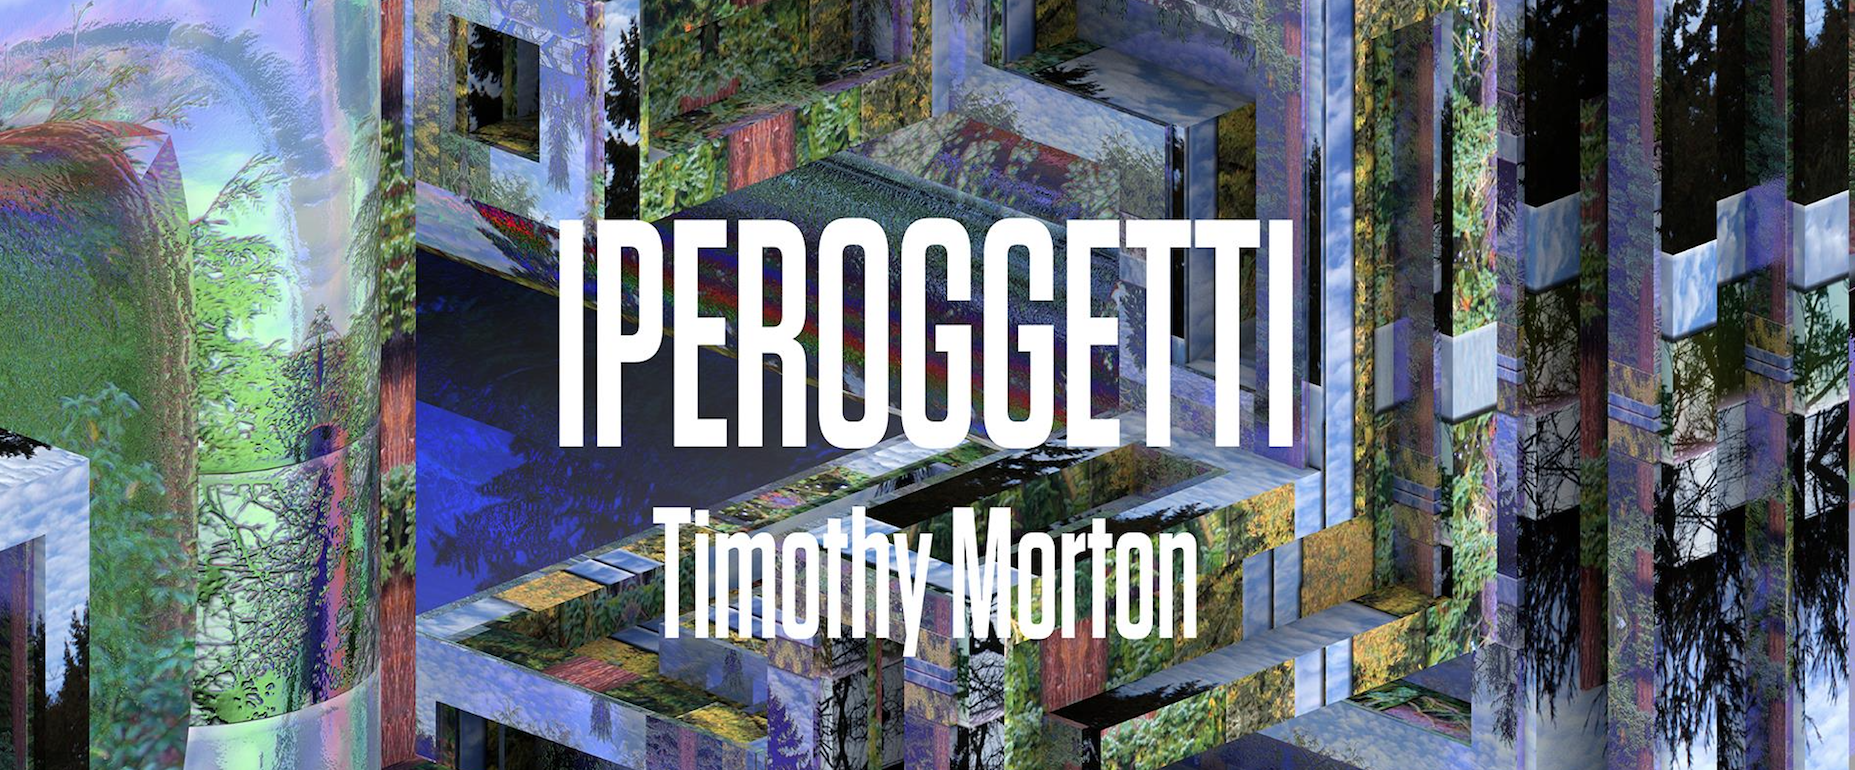 Iperoggetti, Timothy Morton